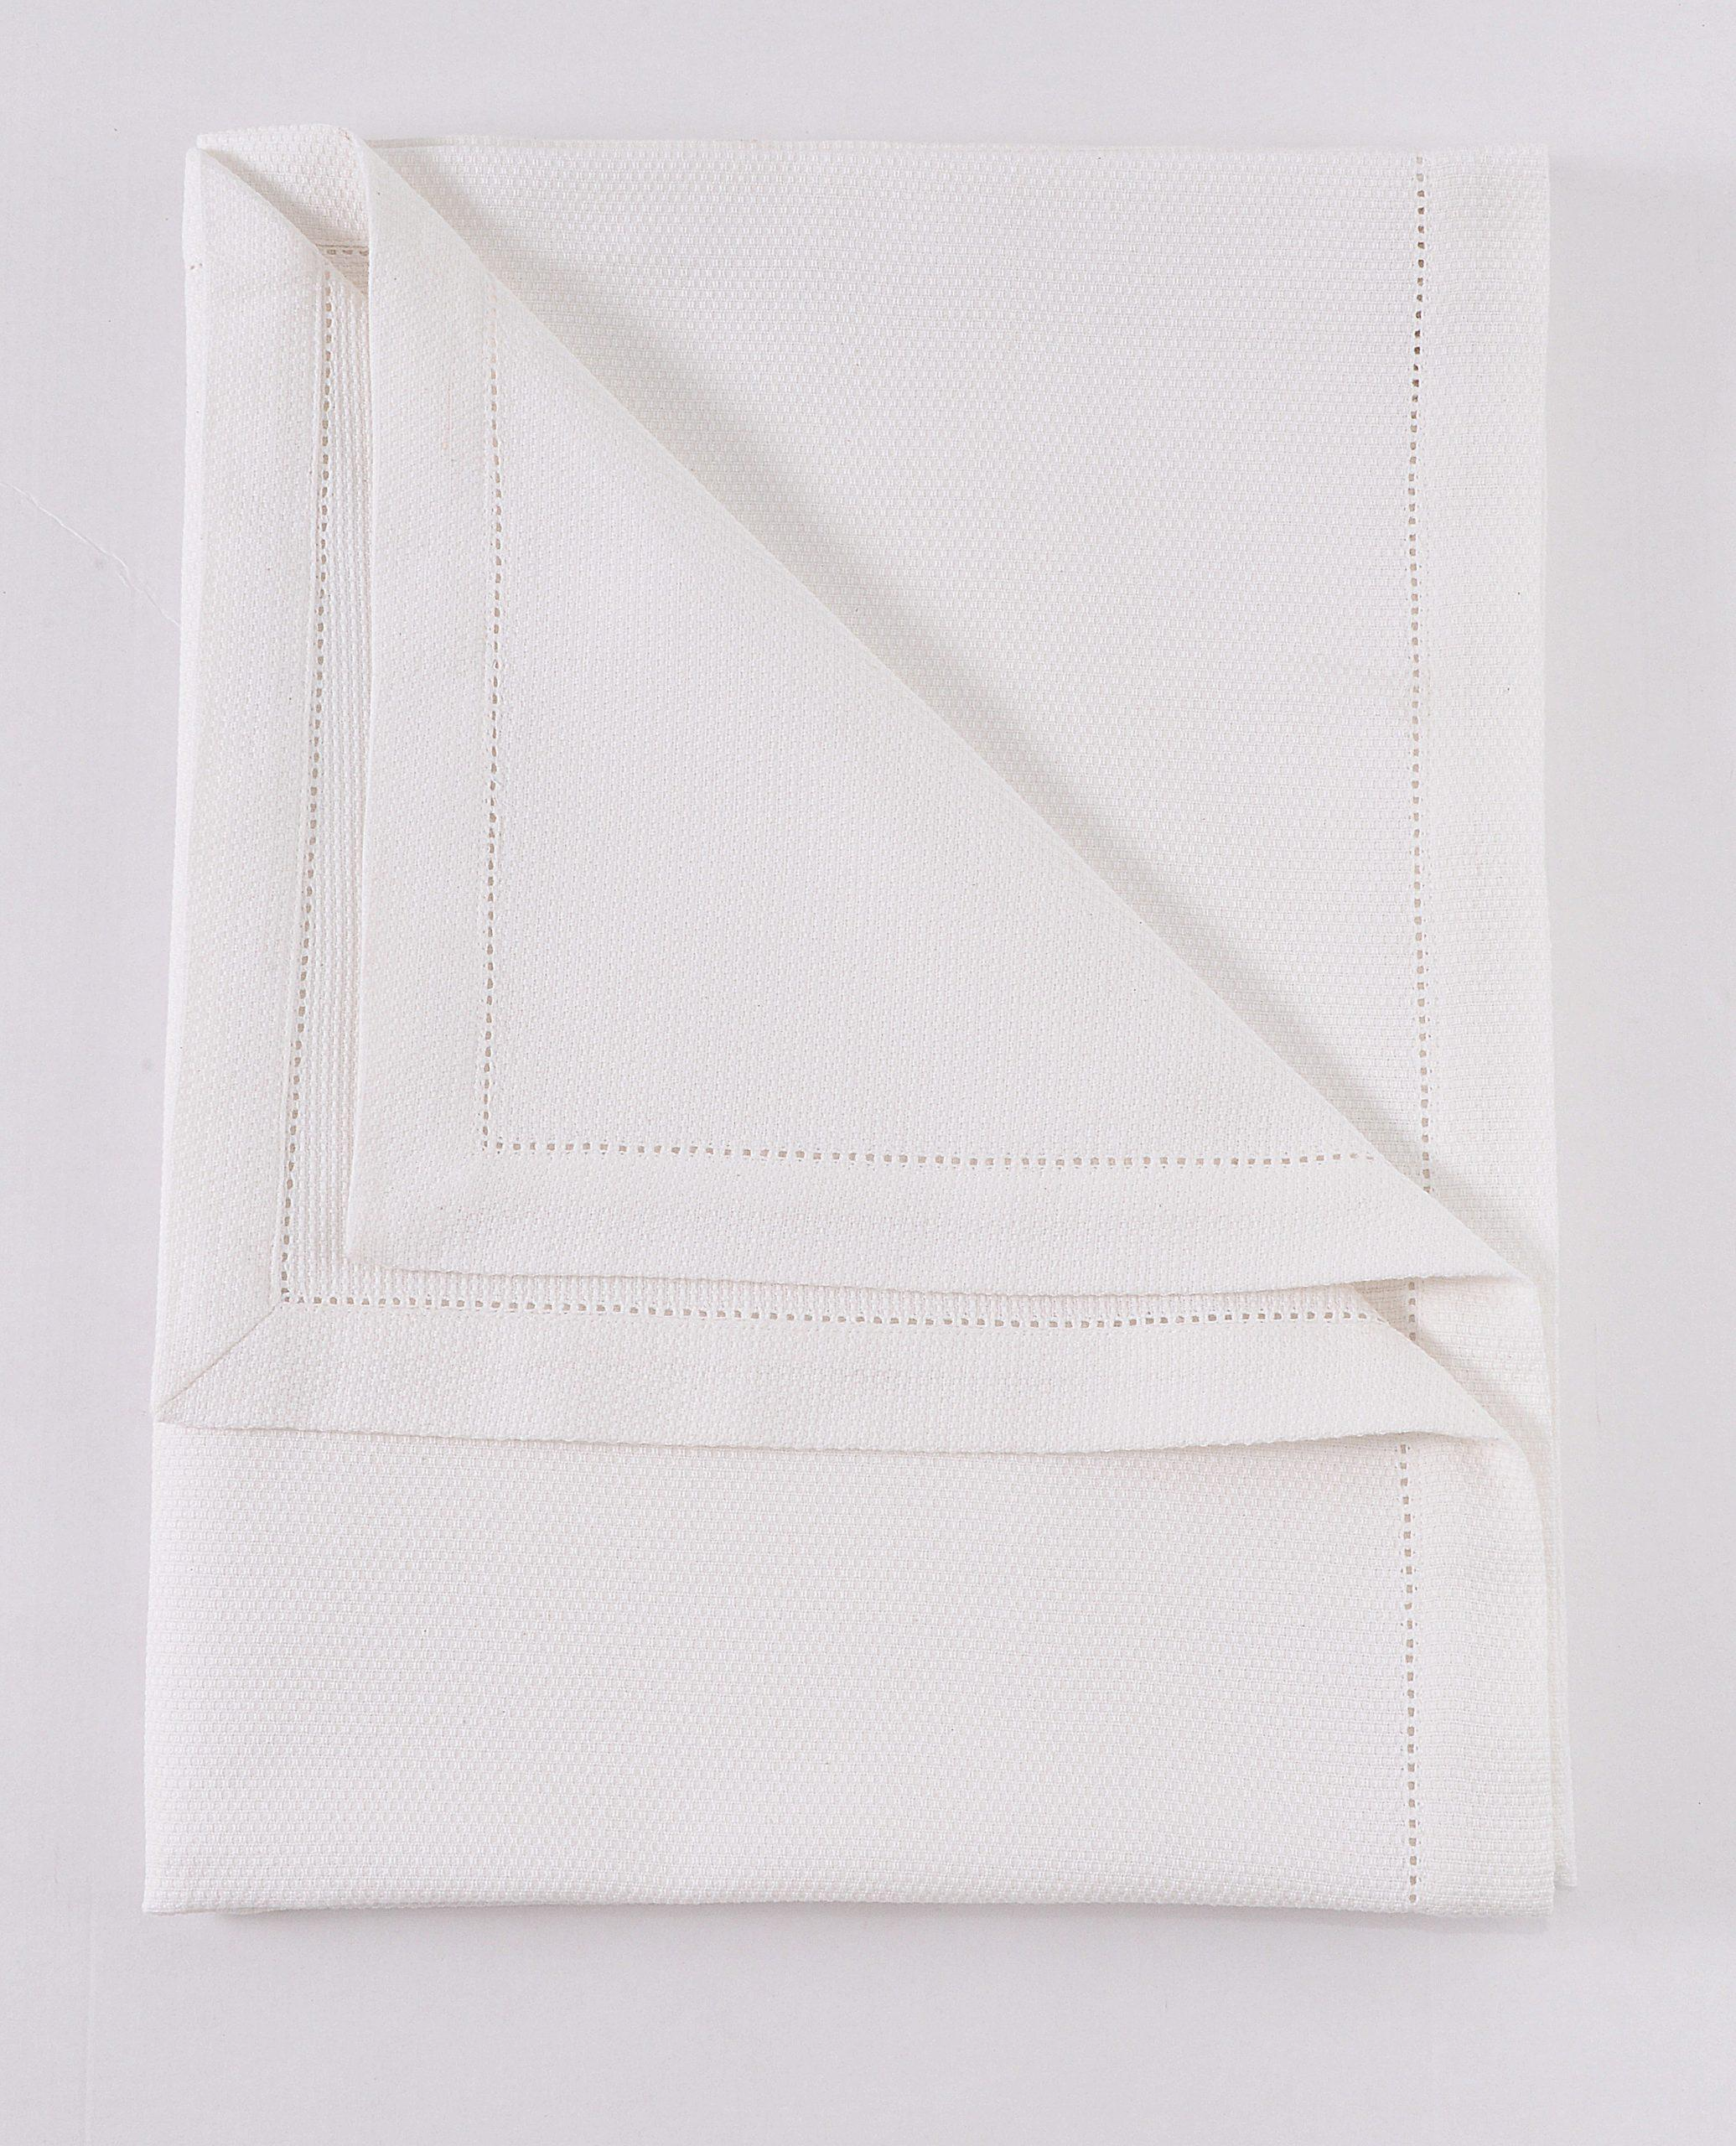 Rythmos Rovenza – Τραπεζομαντηλο Me Αζουρ Offwhite 170X270